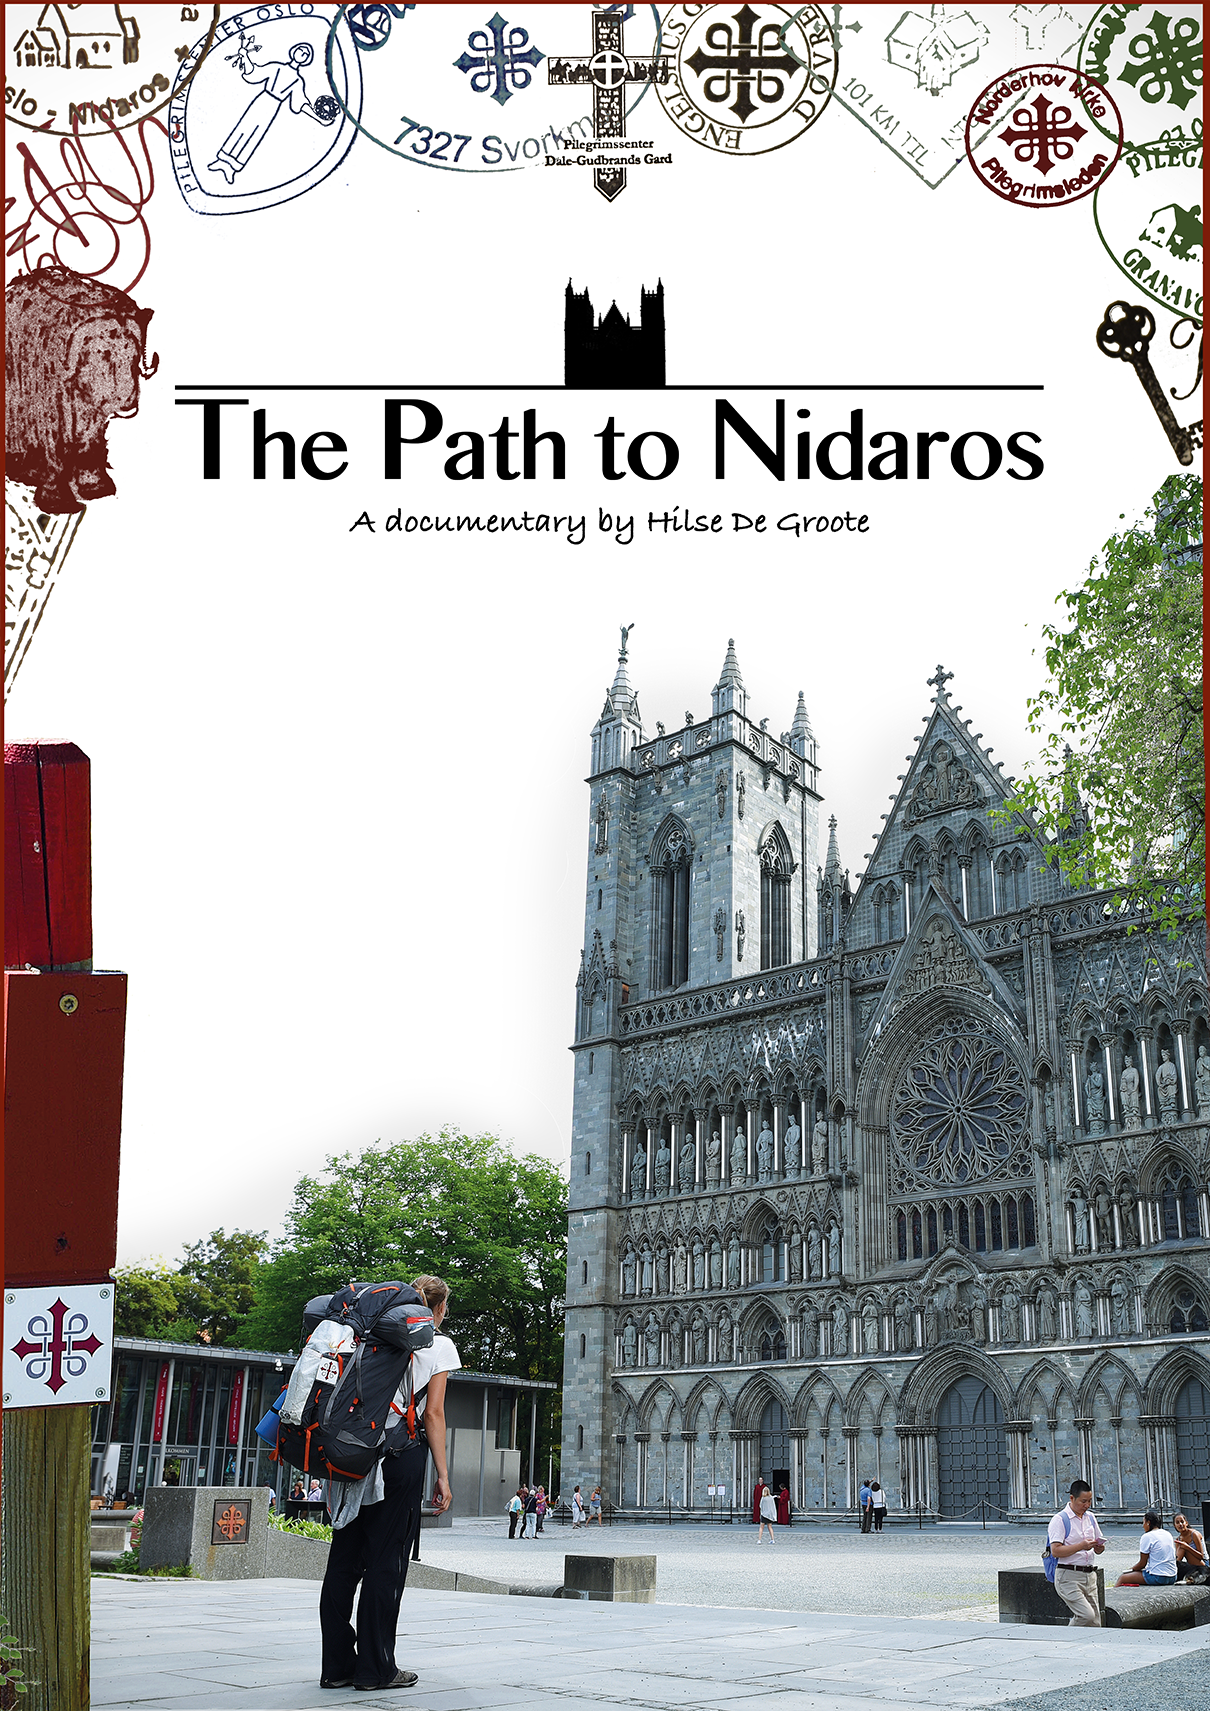 the-path-to-nidaros-documentary-poster